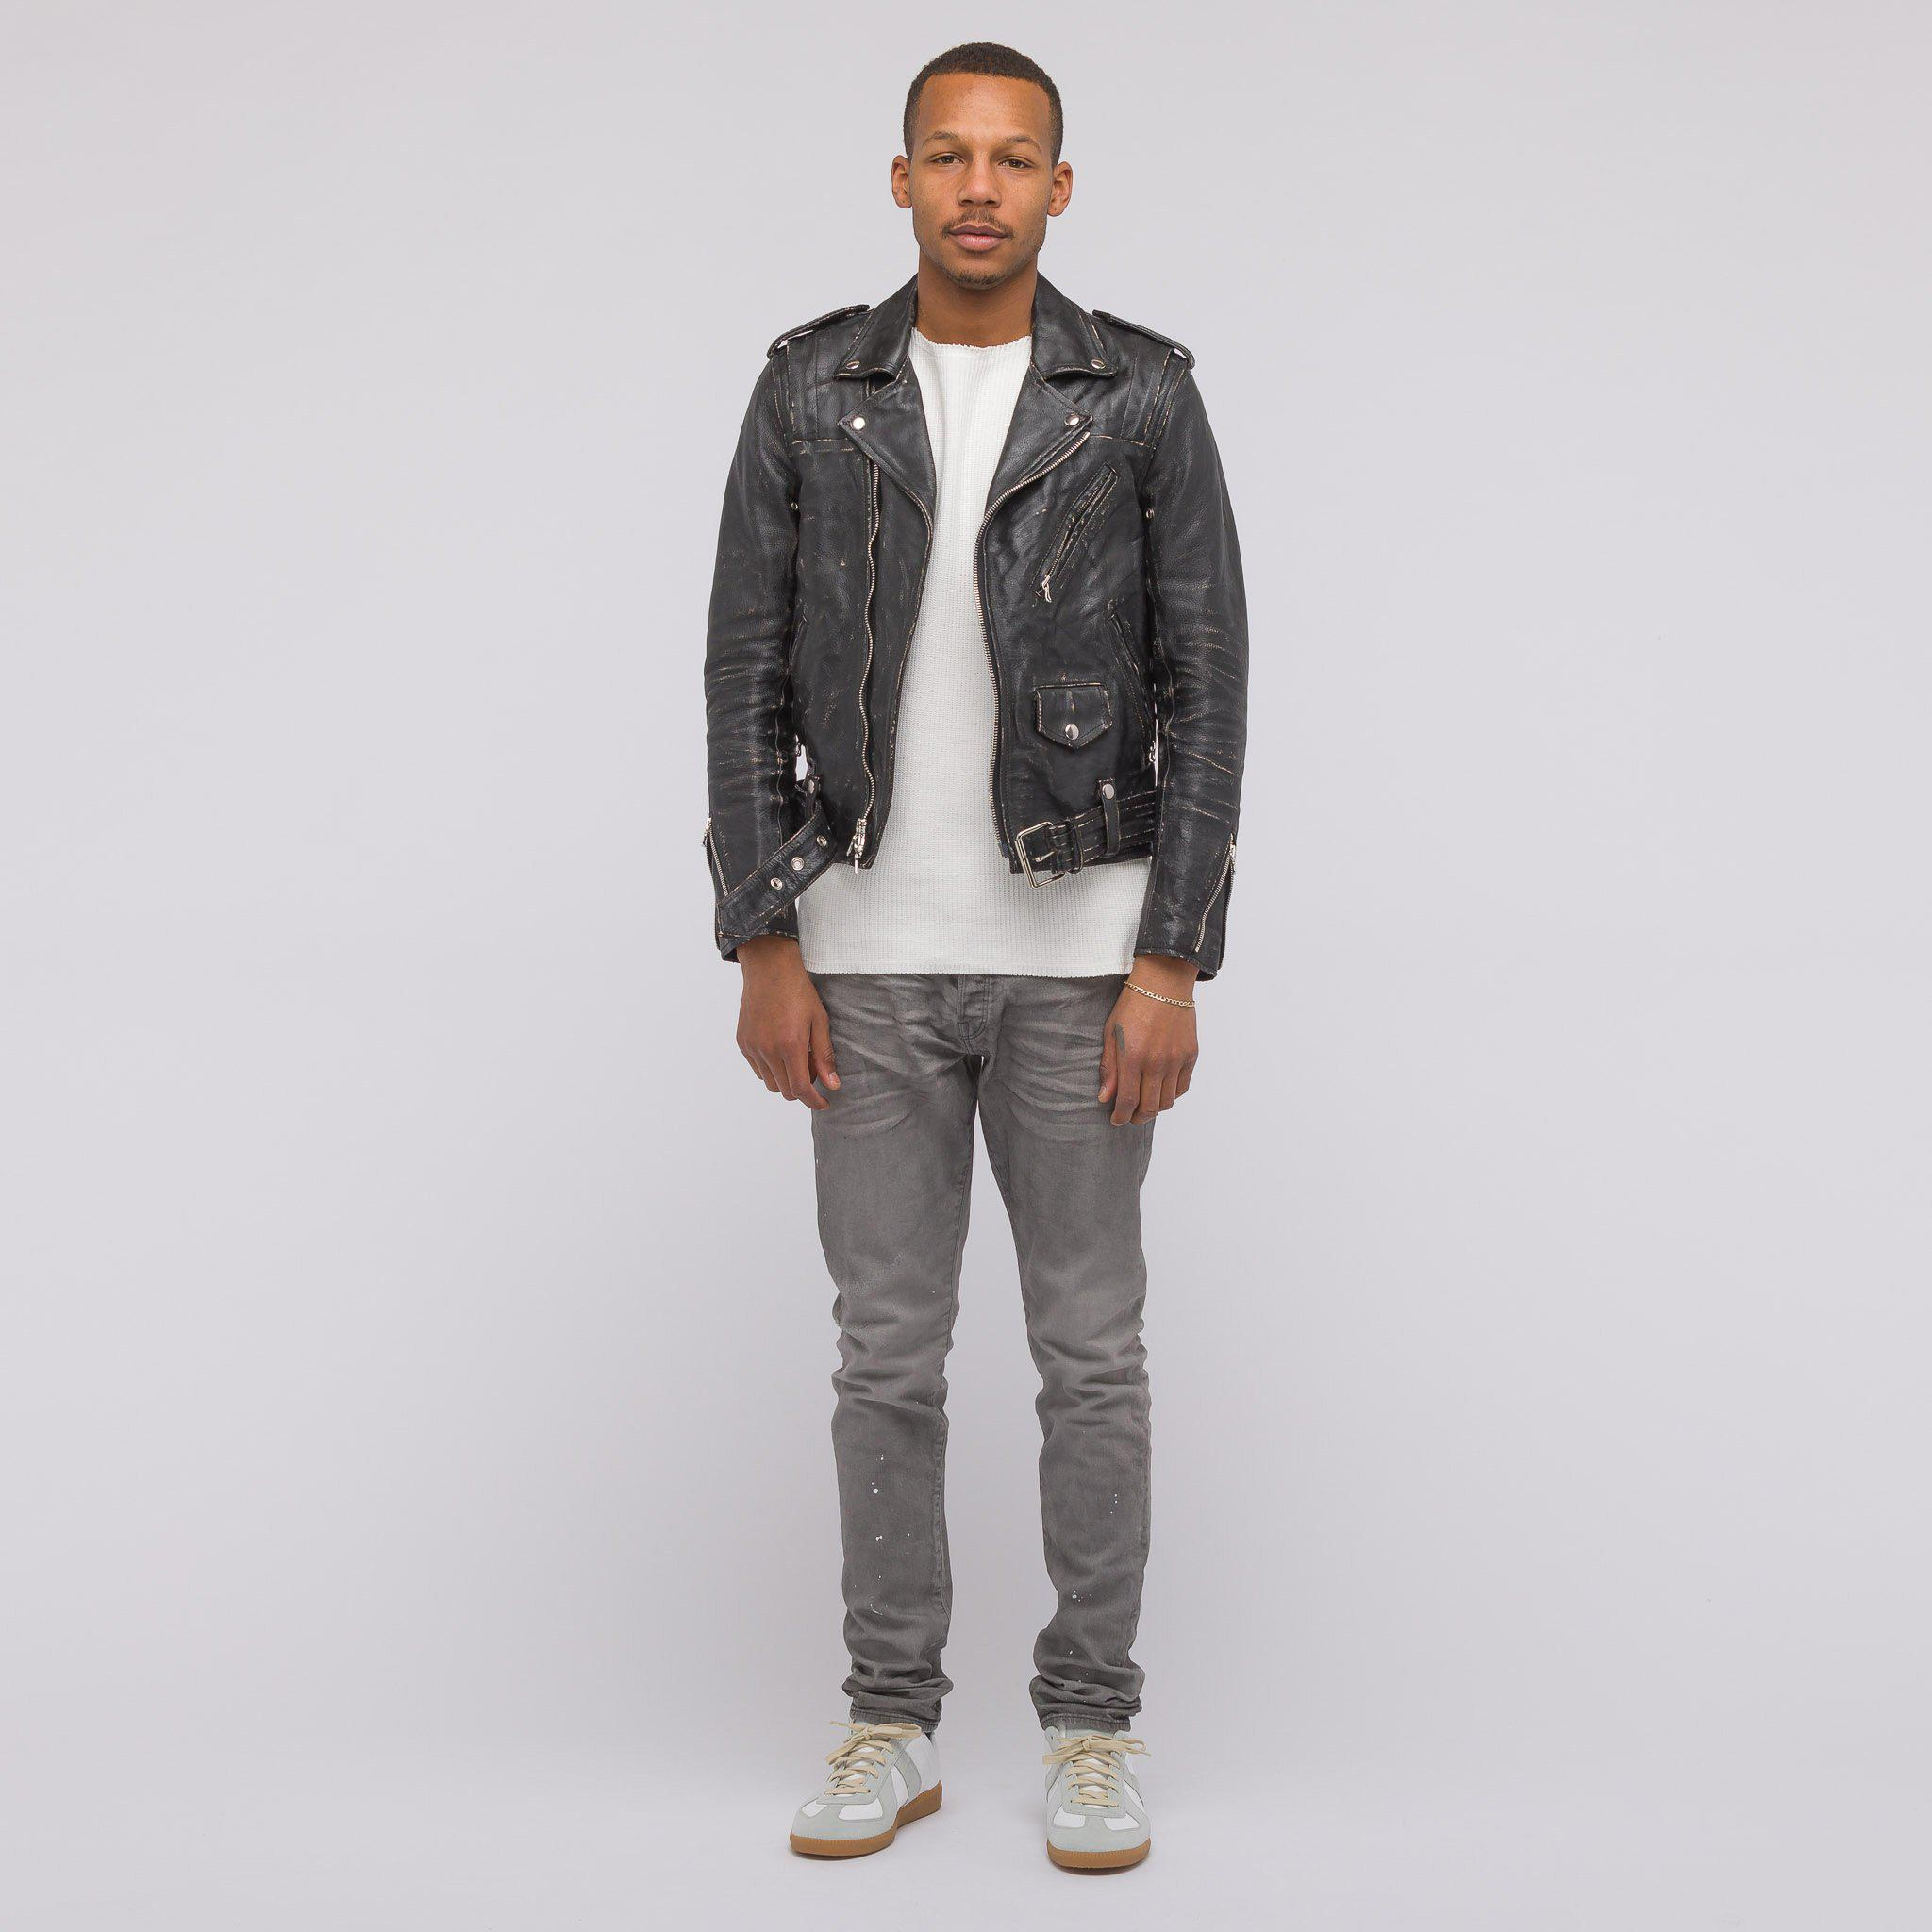 Clearance Newest Mens Yuji Distressed Leather Varsity Jacket John Elliott + Co Cheap Clearance Largest Supplier Sale Online Cheap Sale Low Price Fee Shipping Shop Offer Cheap Online mGTzHk